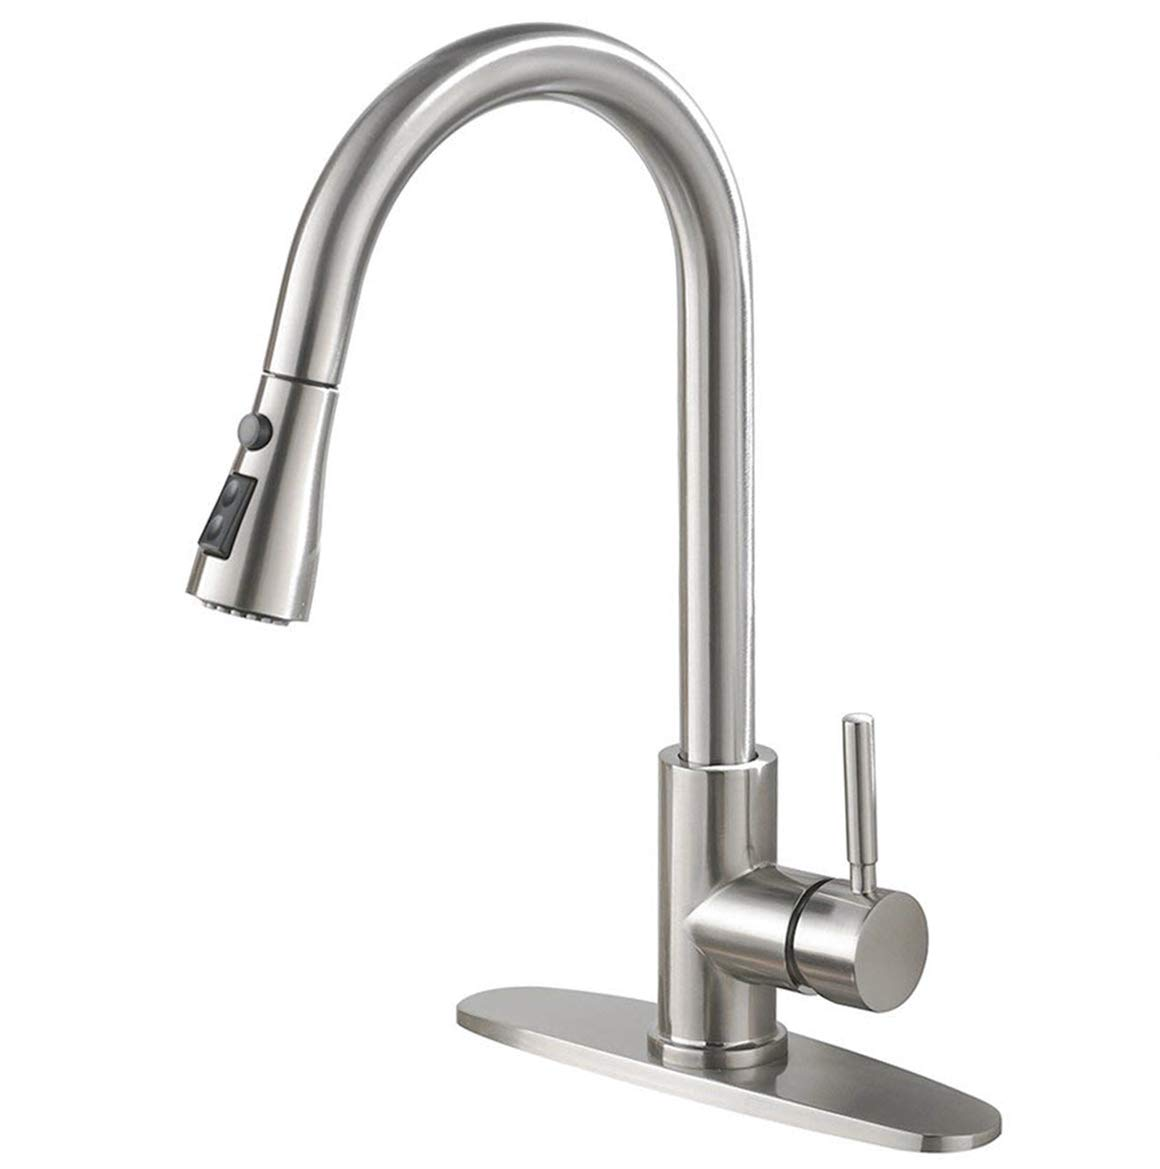 IKEBANA Commercial High Arch Pull Down Sprayer Brushed Nickel Kitchen Faucet, Swivel Single Lever Stainless Steel Kitchen Sink Faucet With Deck Plate